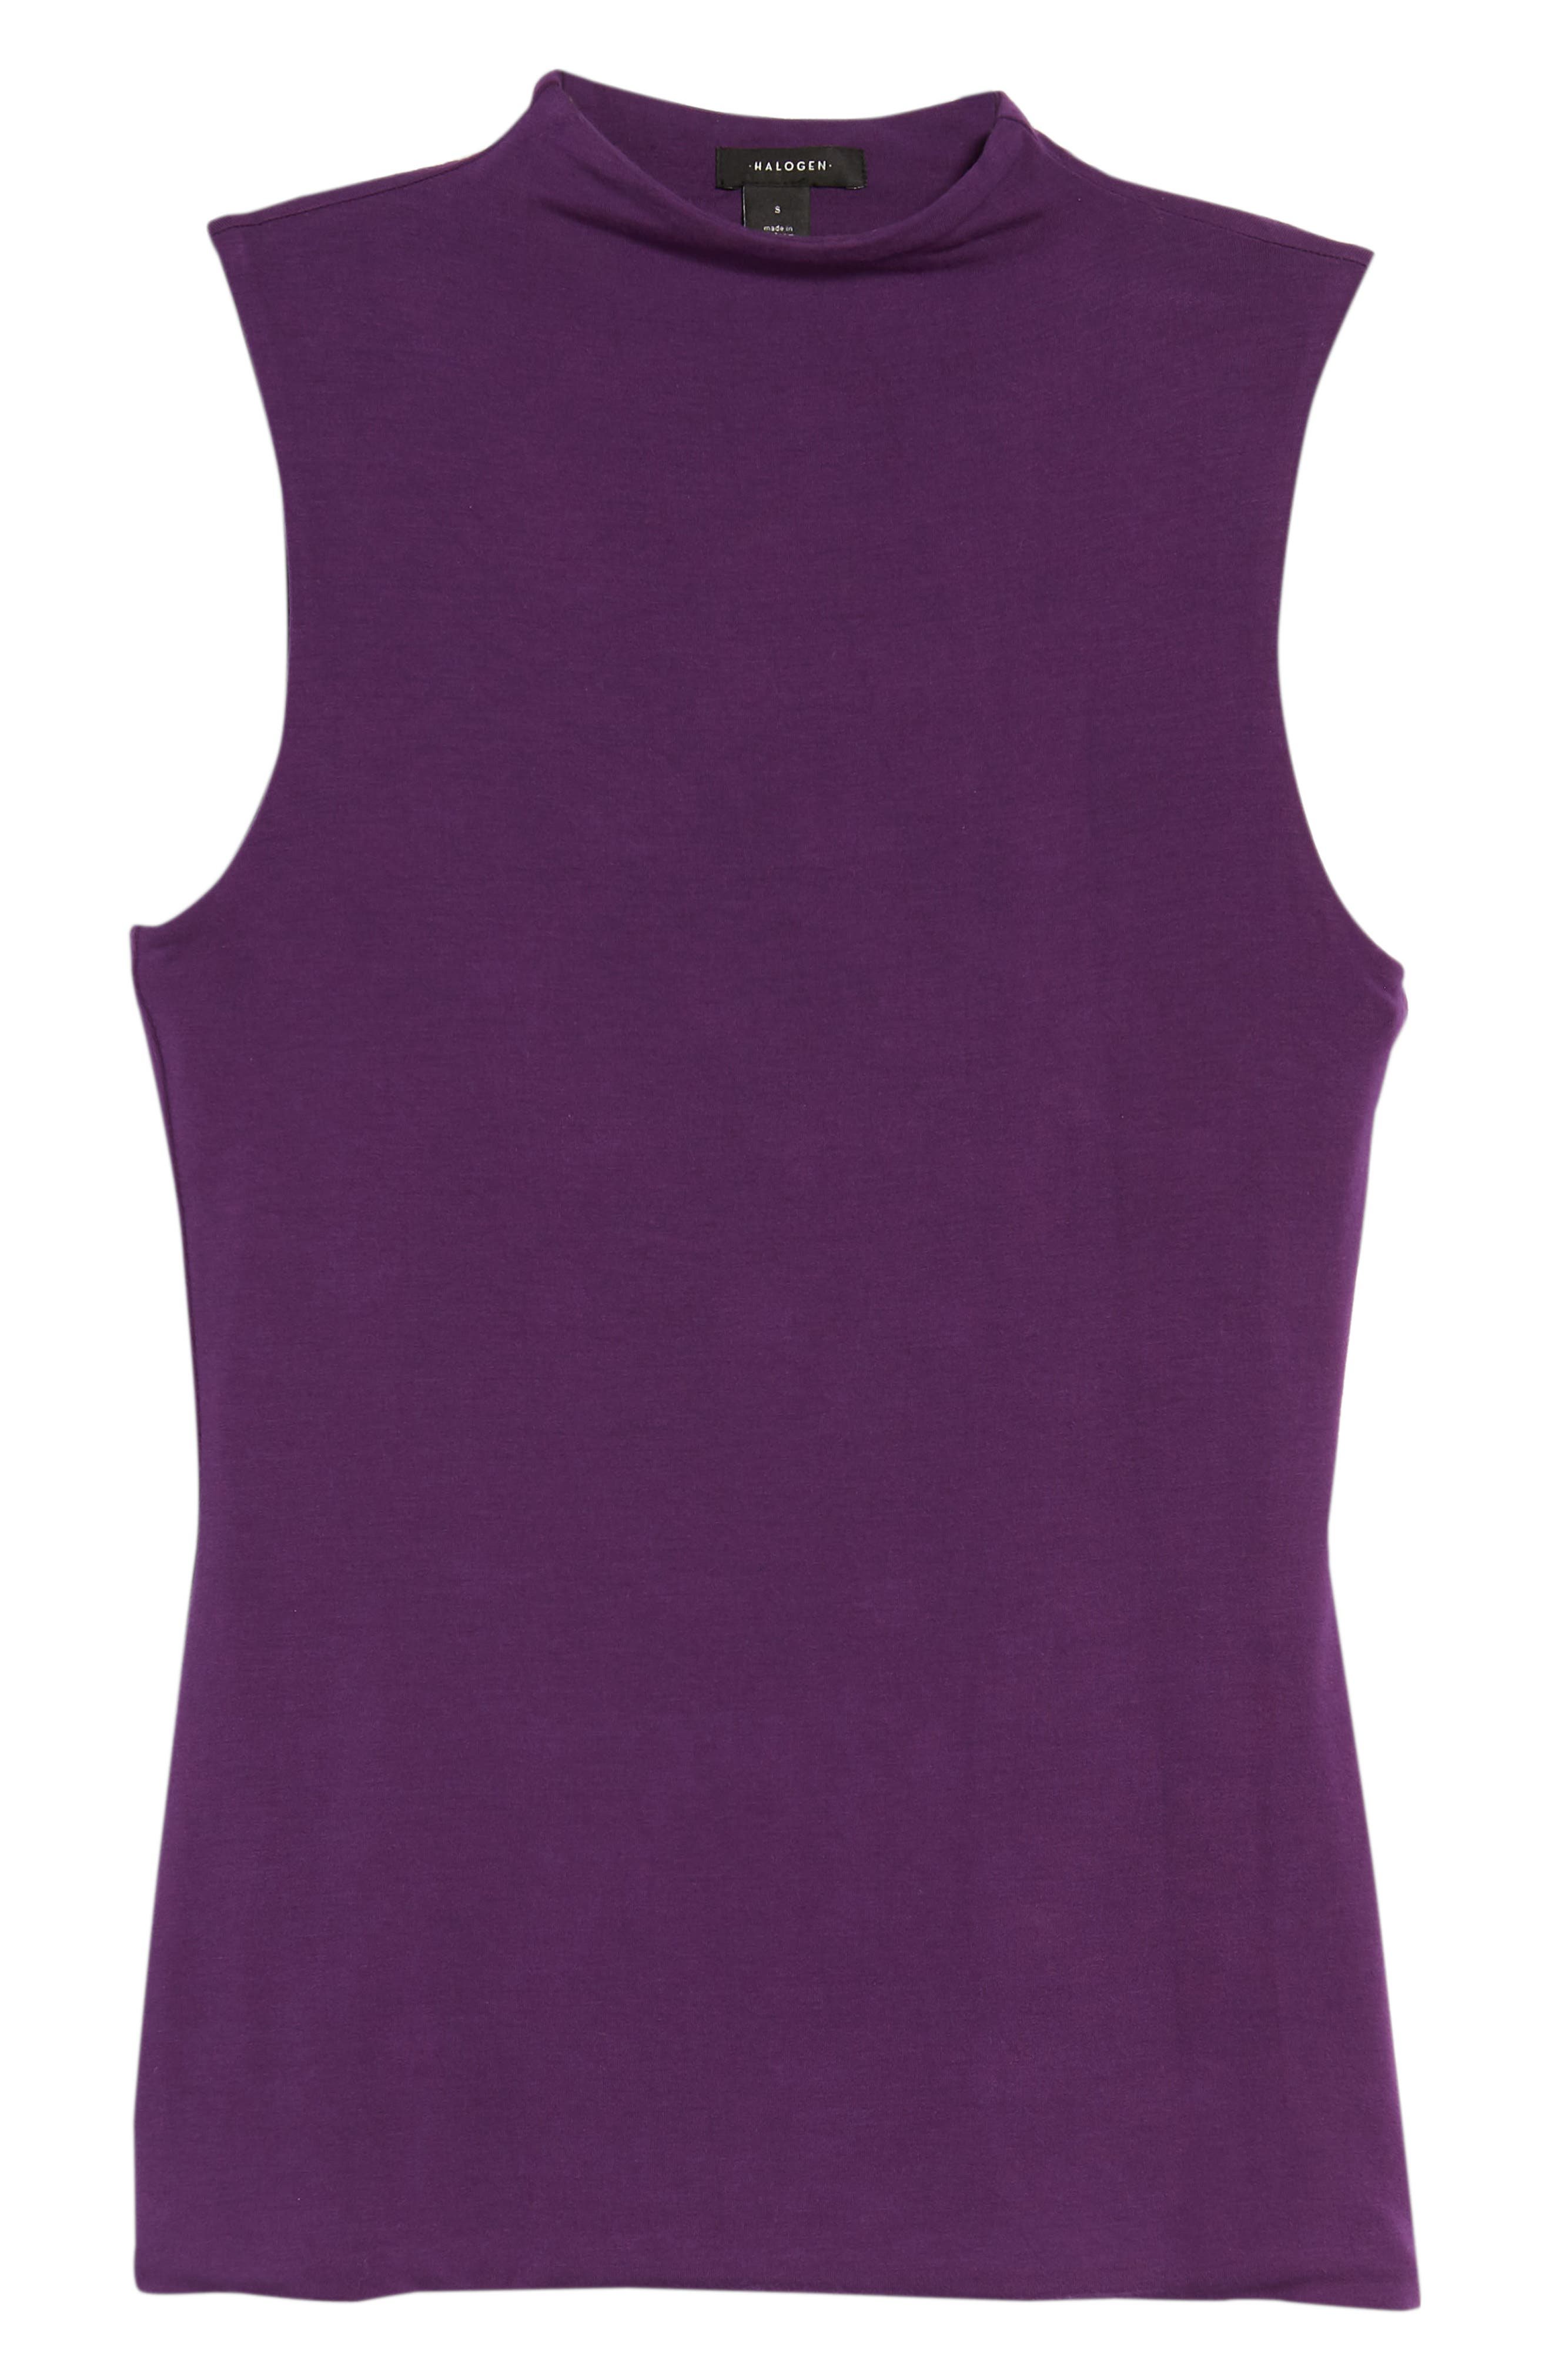 Jersey Funnel Neck Top,                             Alternate thumbnail 6, color,                             Purple Royal